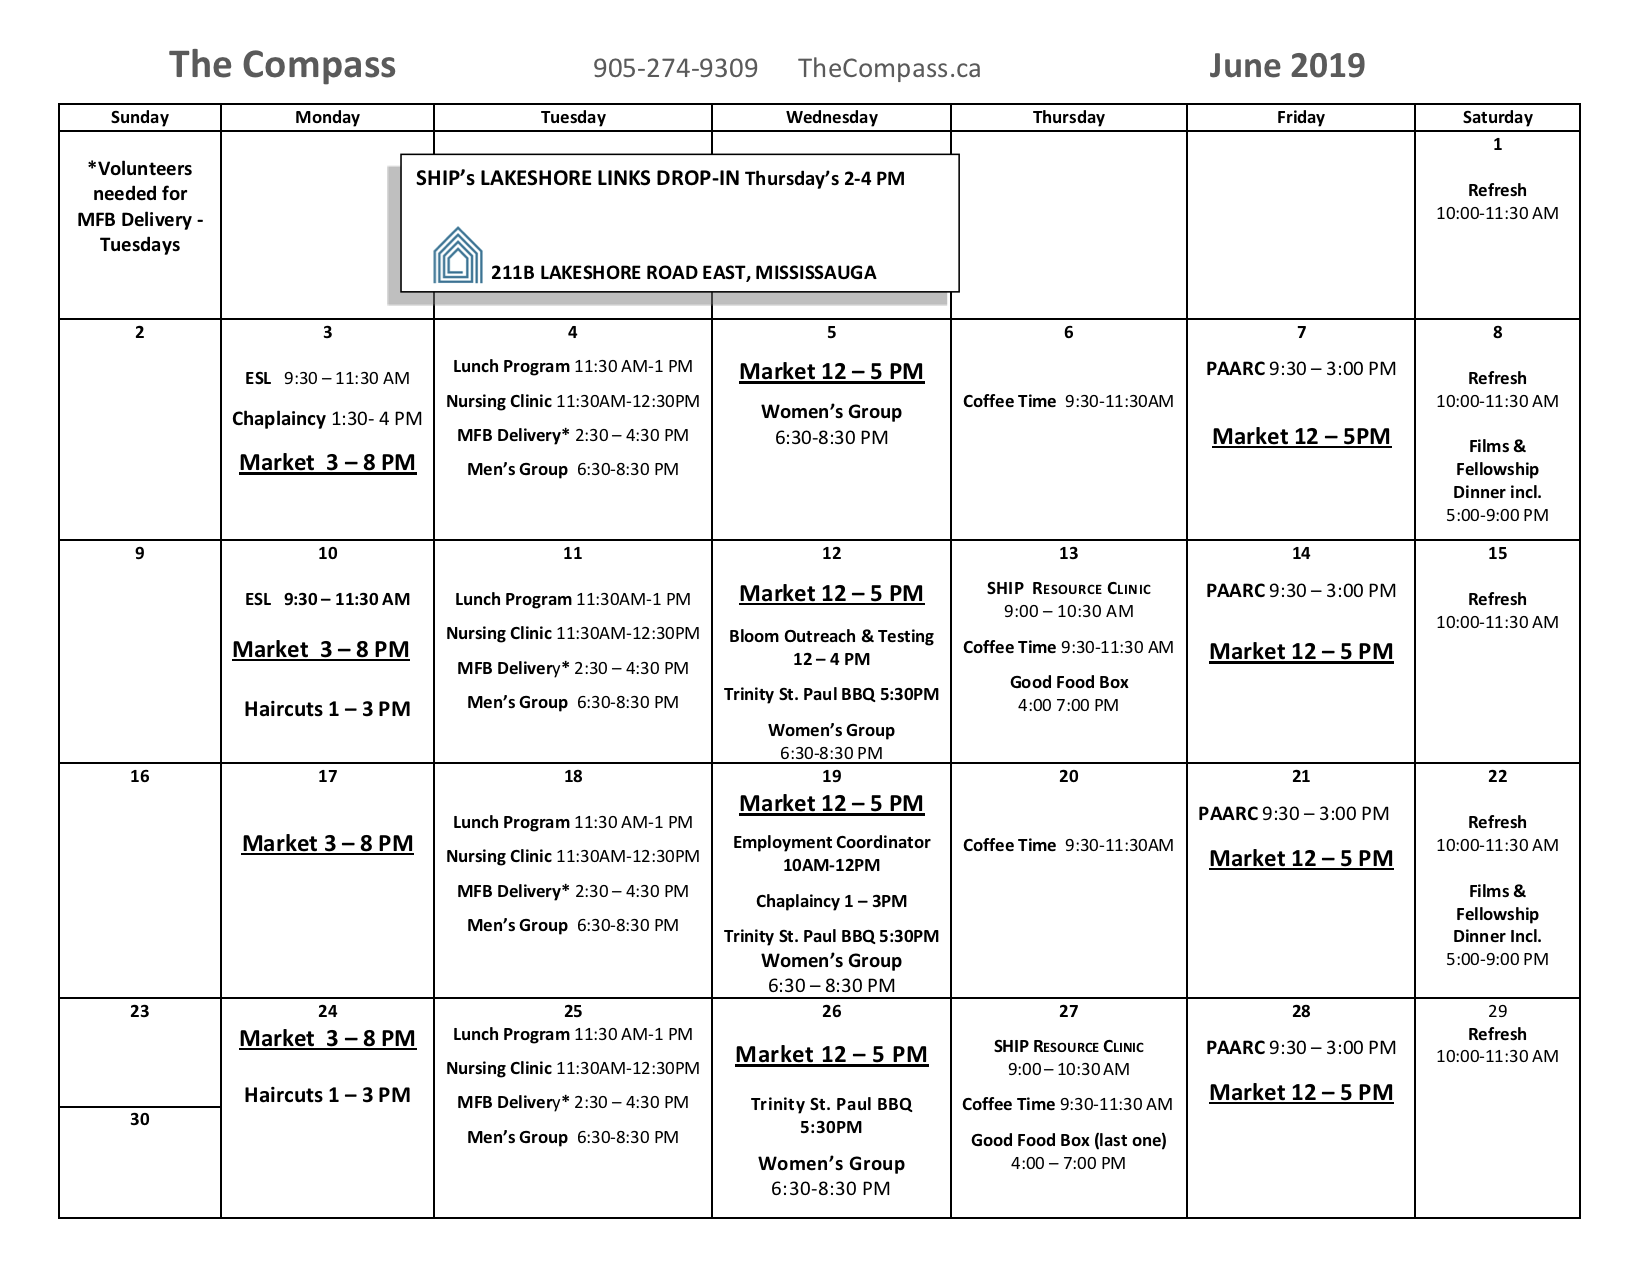 Calendar for the month of June 2019